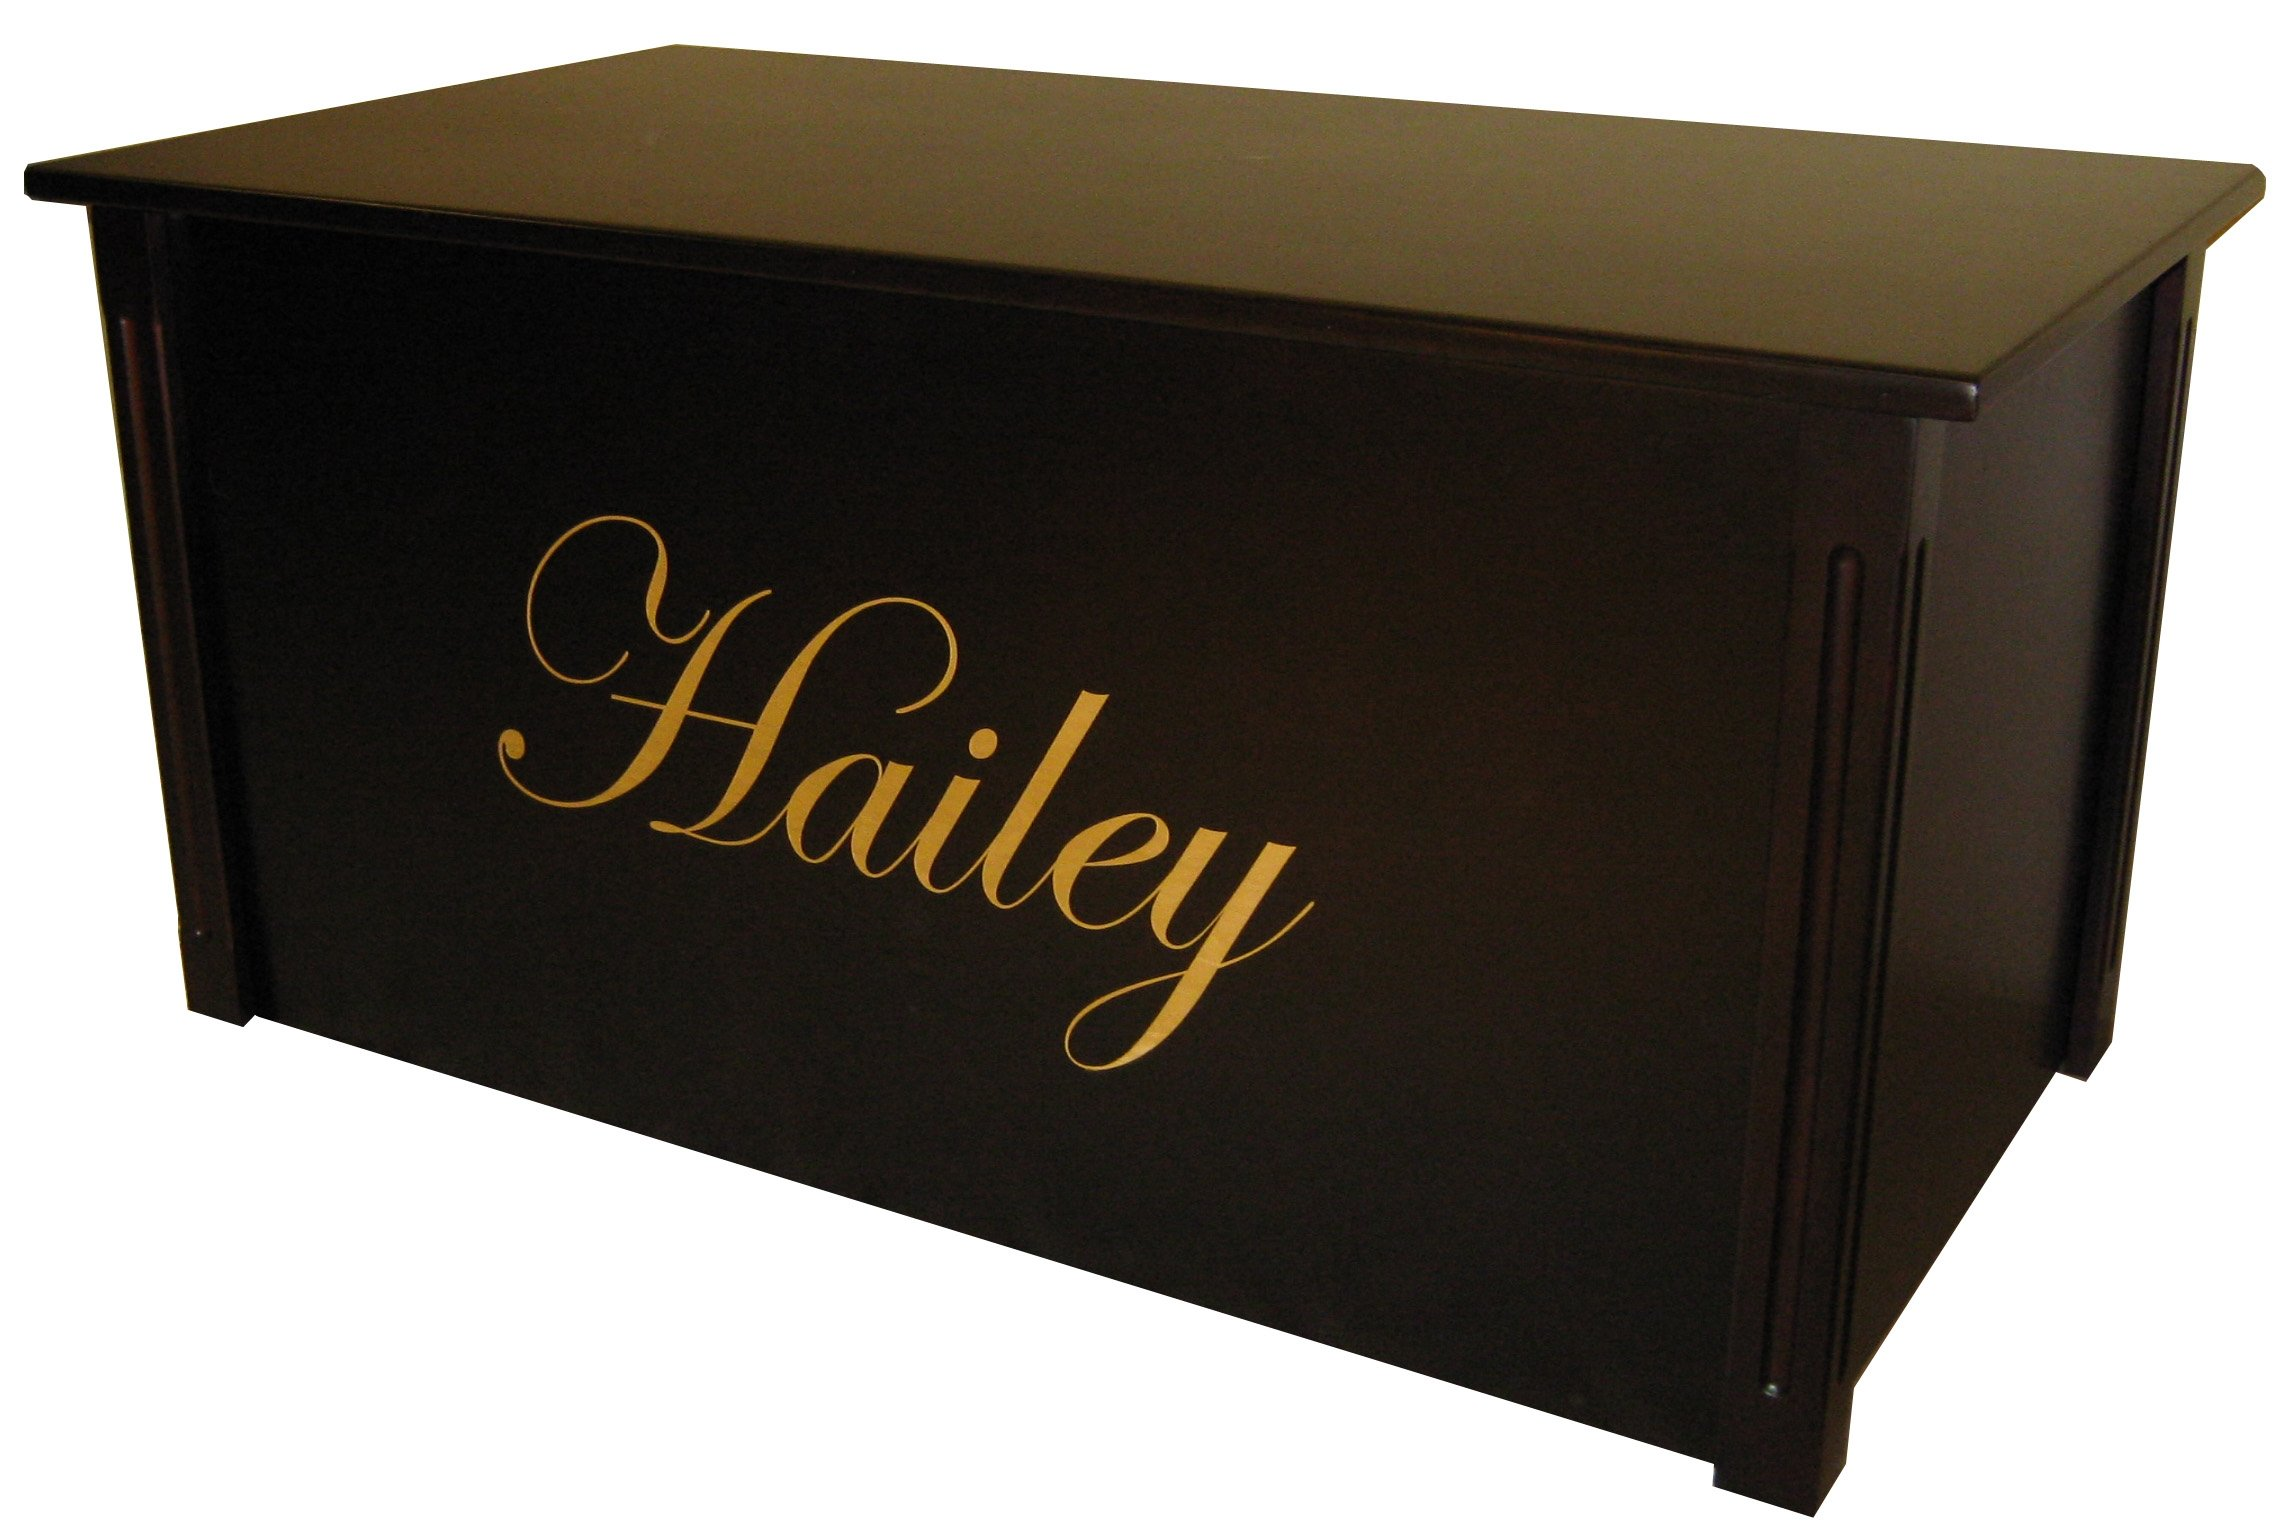 Wood Toy Box, Large Espresso Toy Chest, Personalized Edwardian Font, Custom Options (Cedar Base - Gold Lettering) by Wood Toy Box